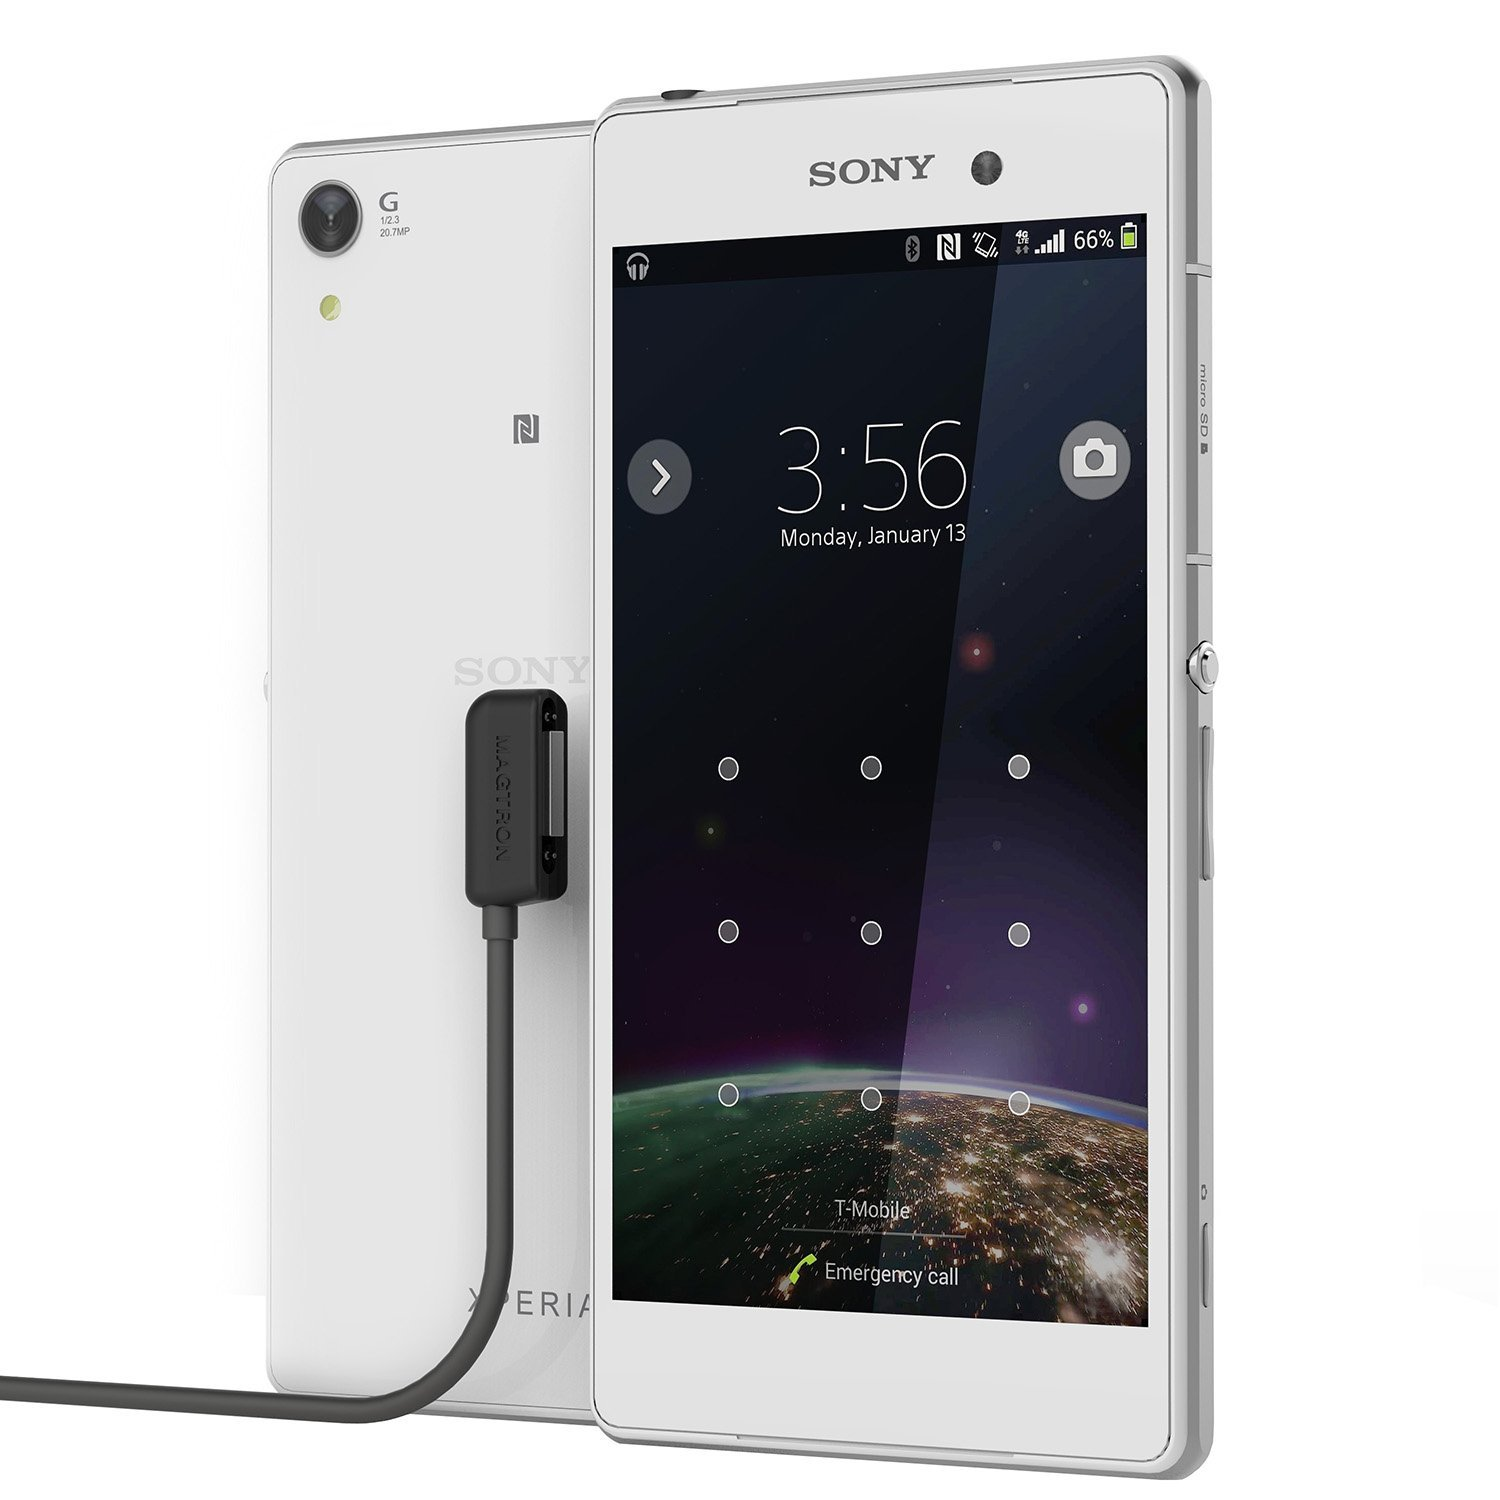 [ Magnector X ] High Performance Sony Xperia Z1 / Z2 Charging Cable - Enhanced Magnetic Connection and Charging Speed